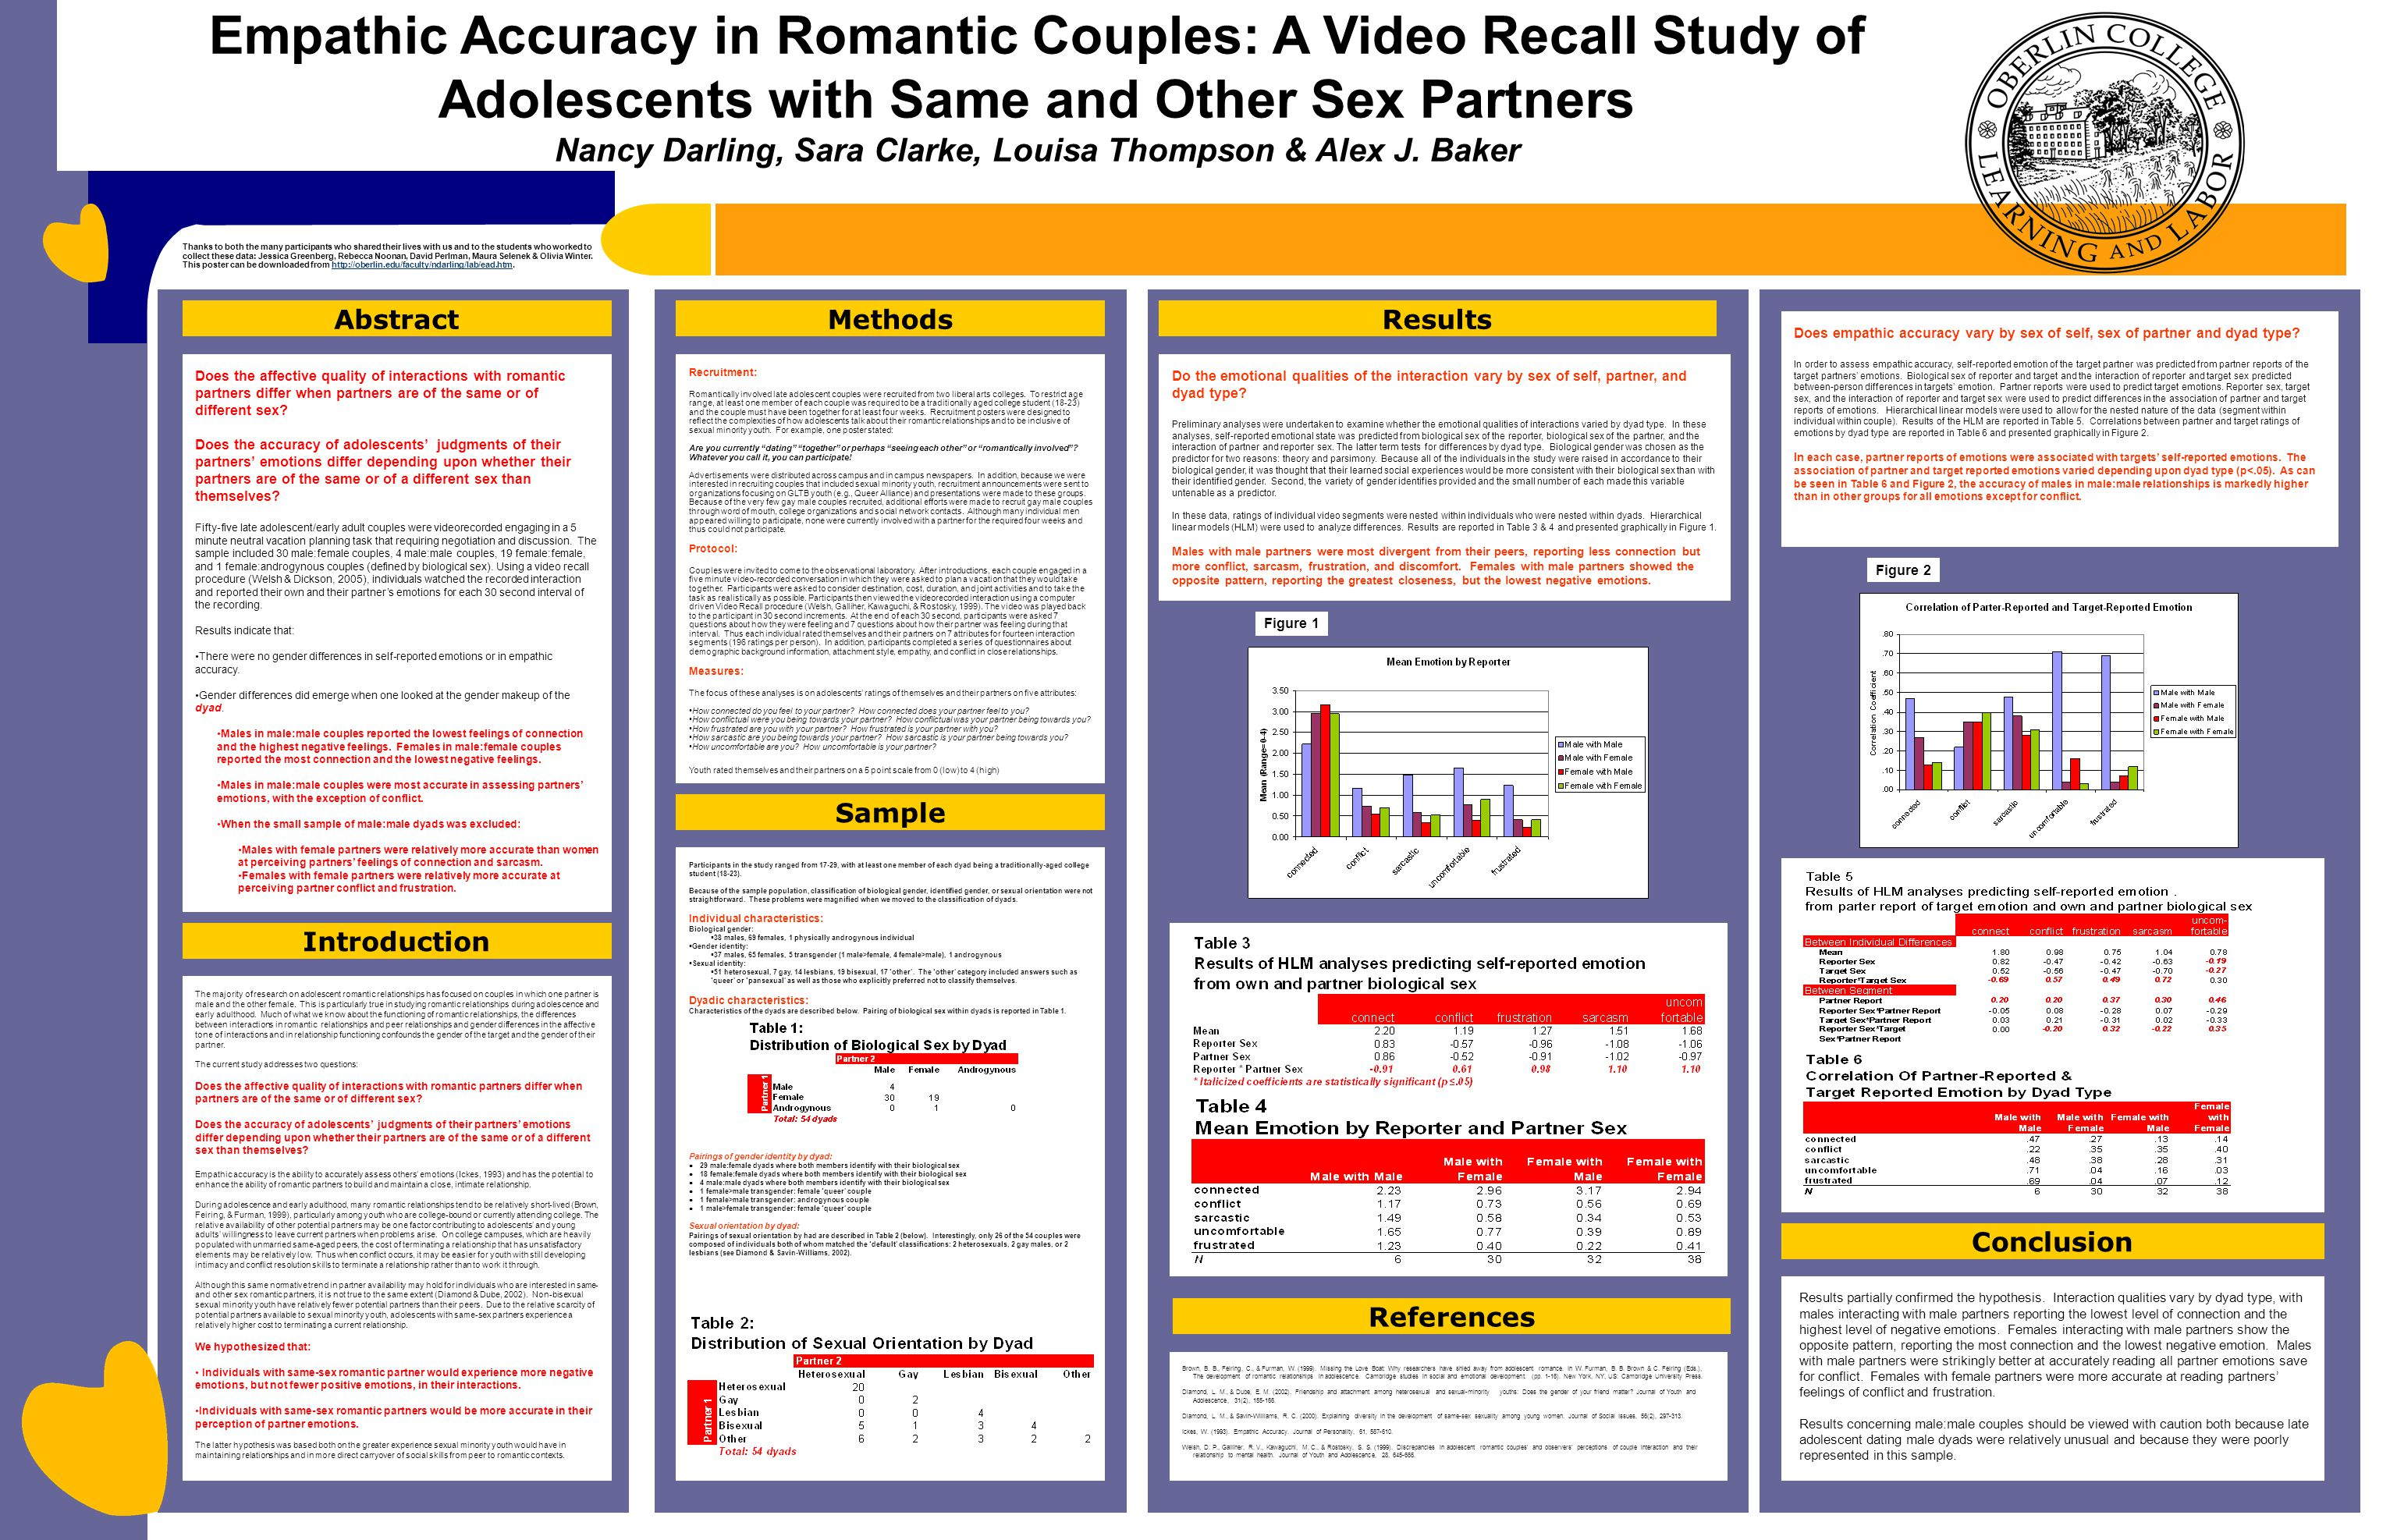 Empathic Accuracy in Romantic Couples: A Video Recall Study of Adolescents with Same and Other Sex Partners Nancy Darling, Sara Clarke, Louisa Thompso